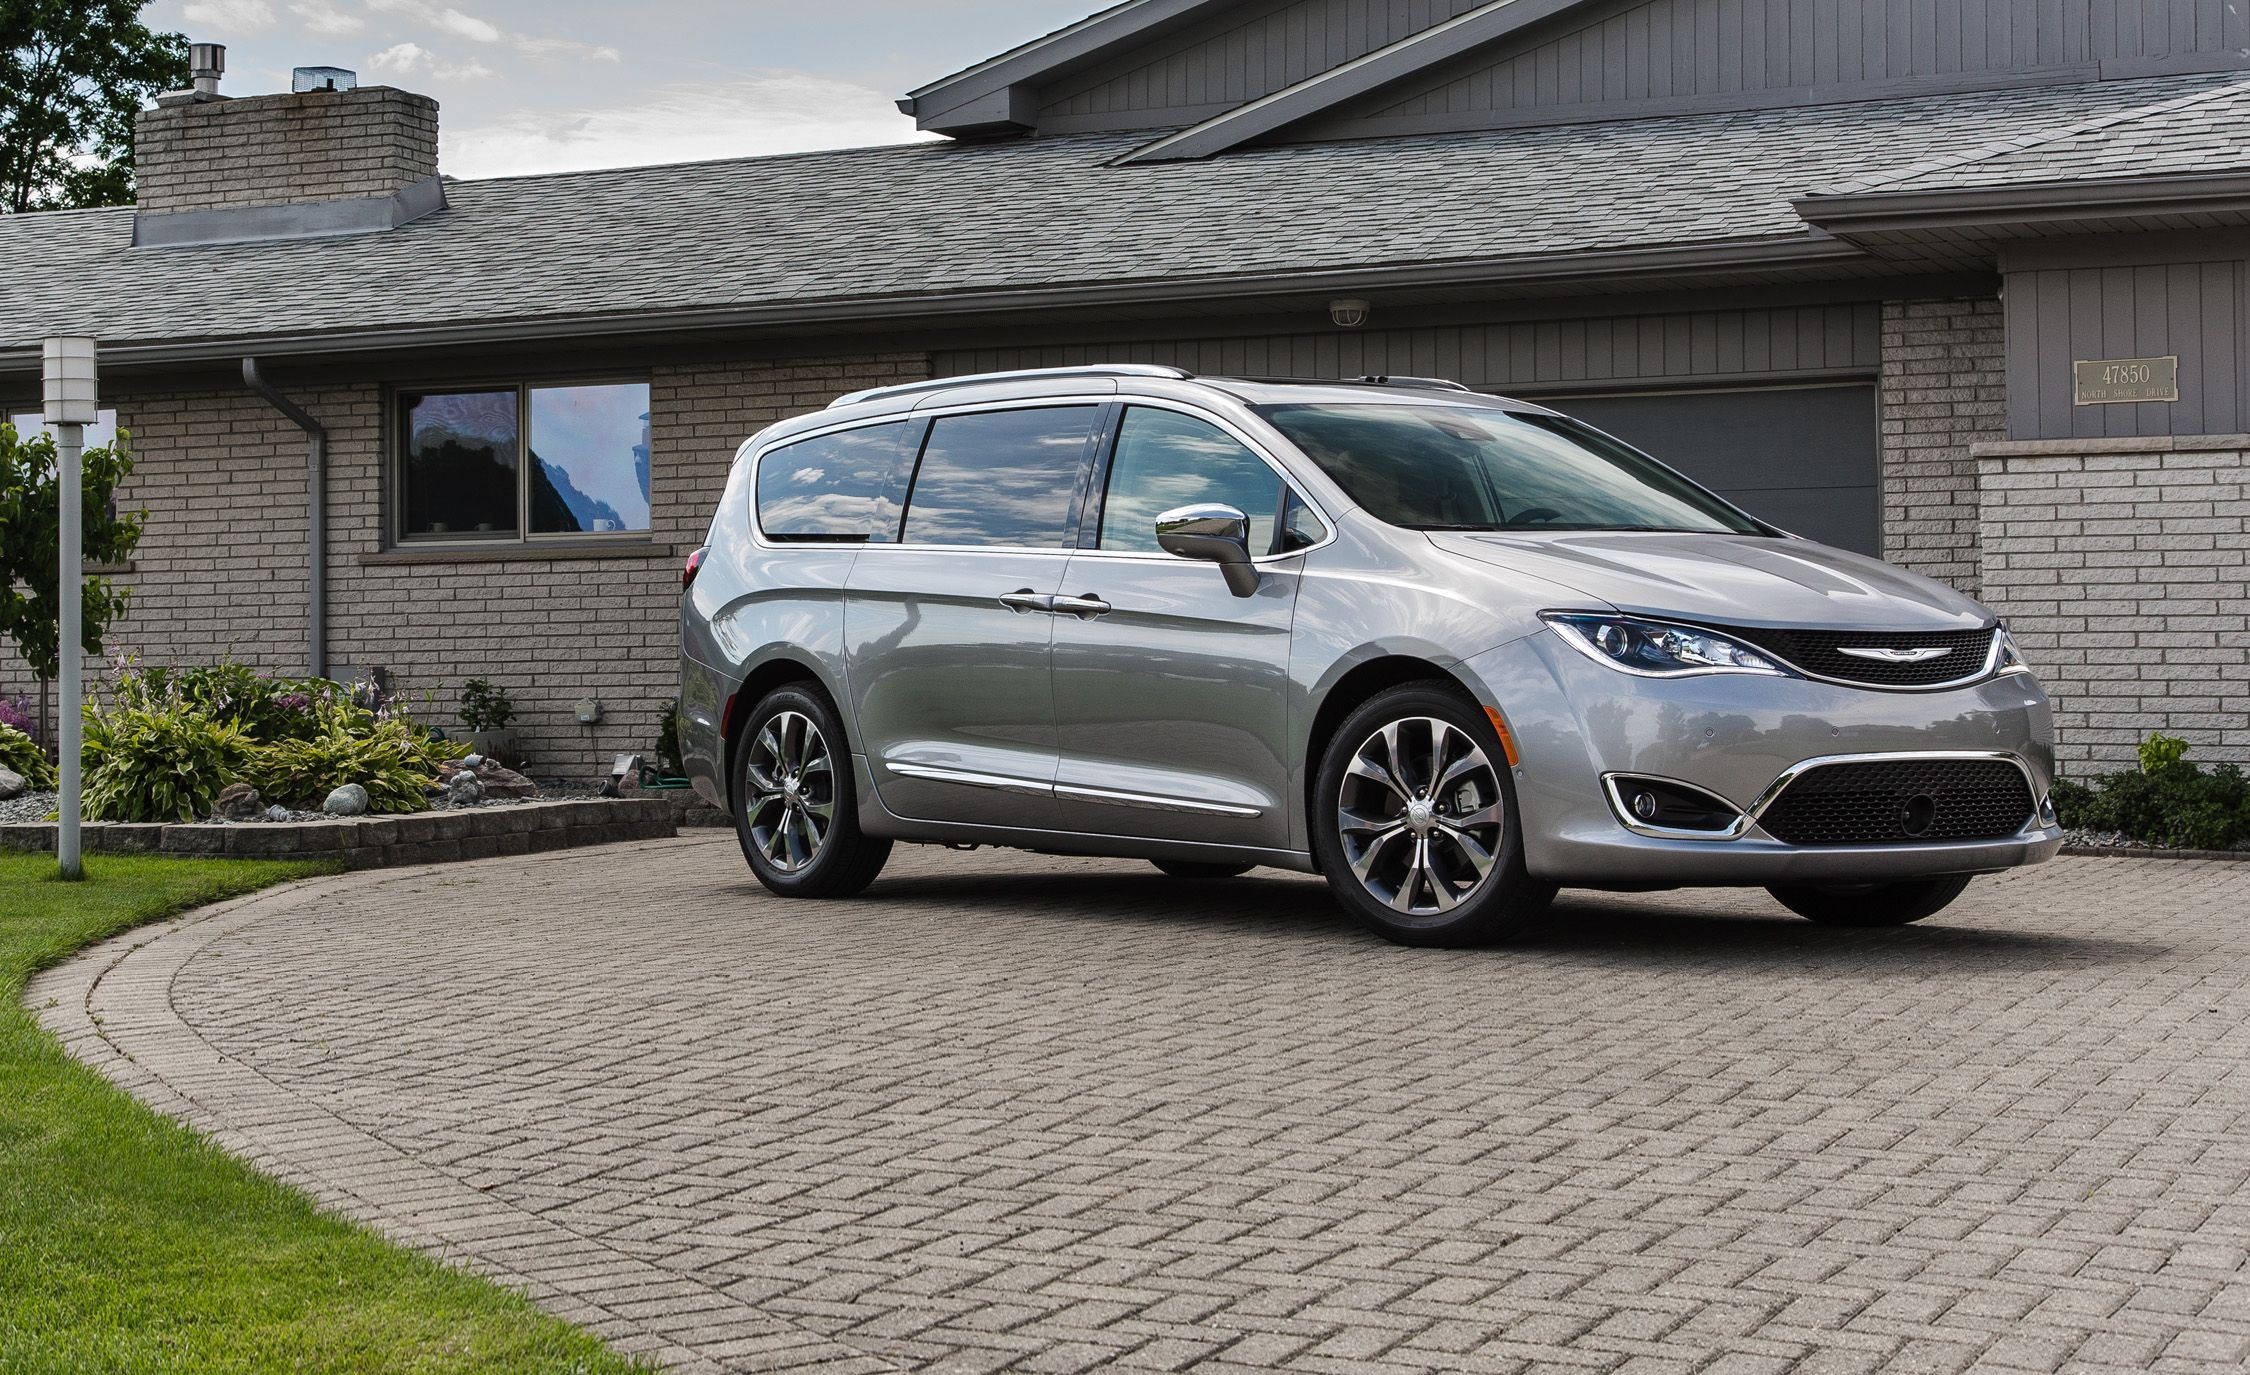 2018 chrysler pacifica interior. wonderful interior and 2018 chrysler pacifica interior